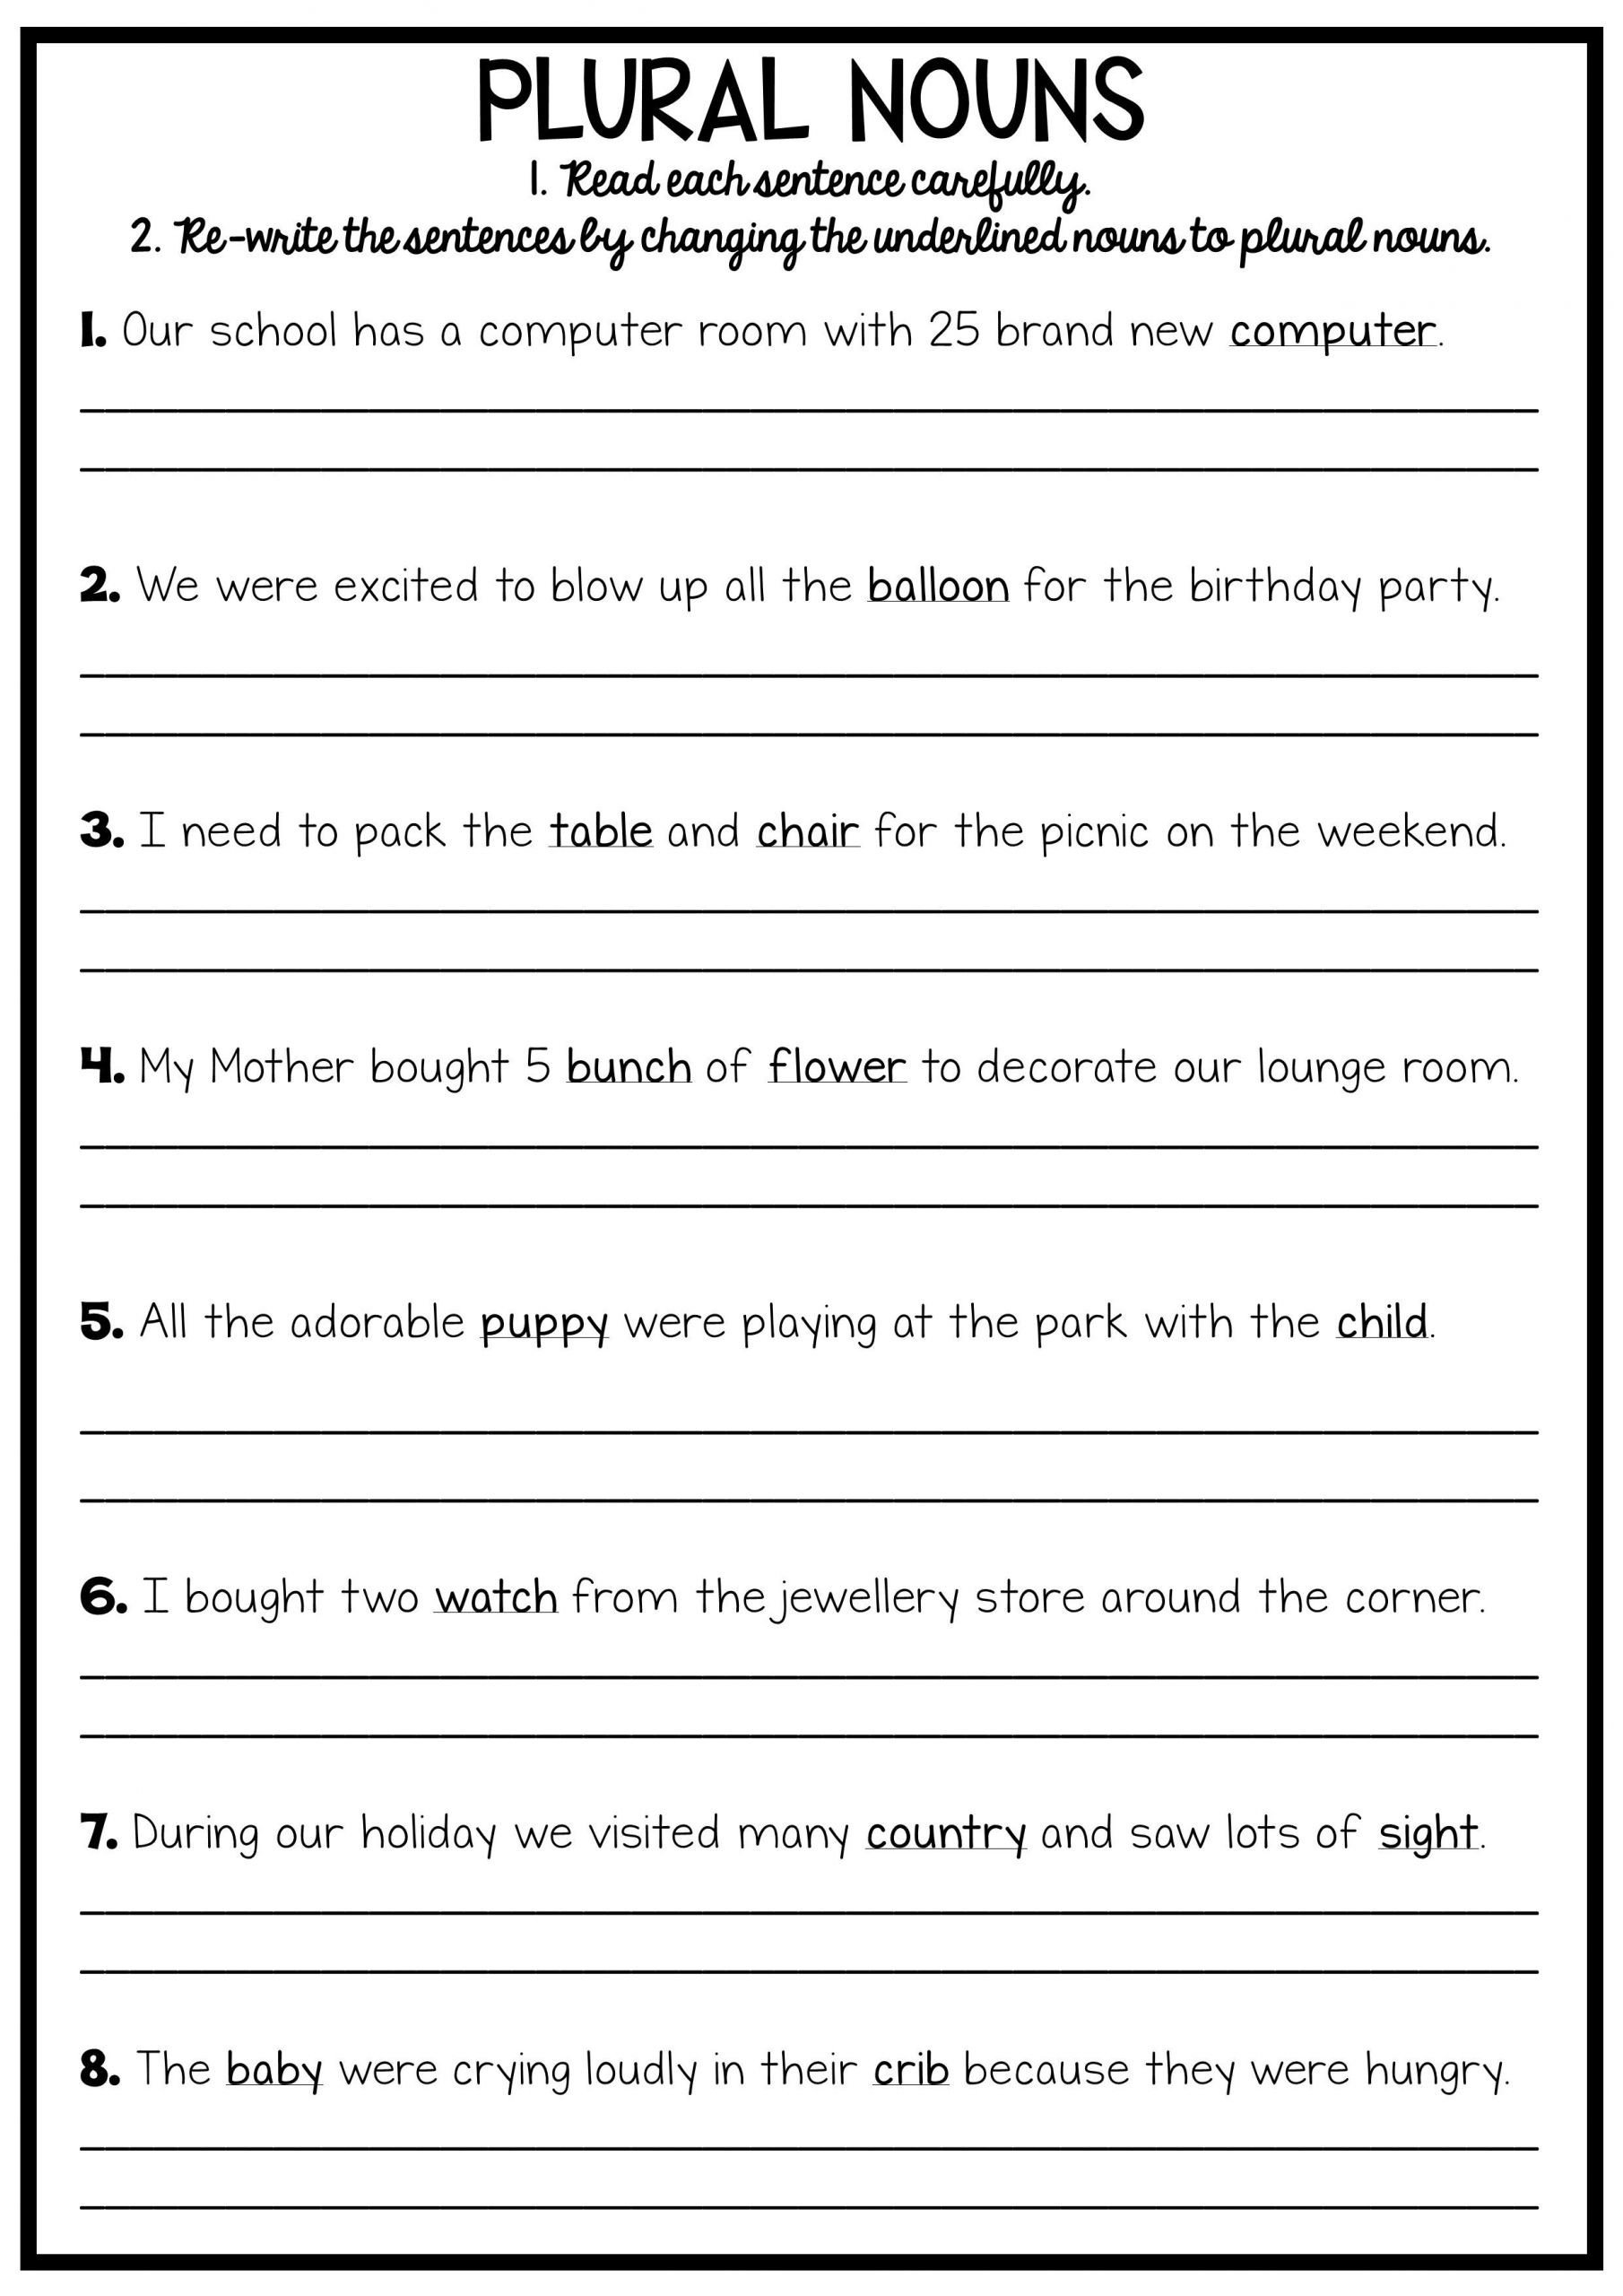 Printable Computer Worksheets Grammar Worksheets 8th Grade English Printable Reading